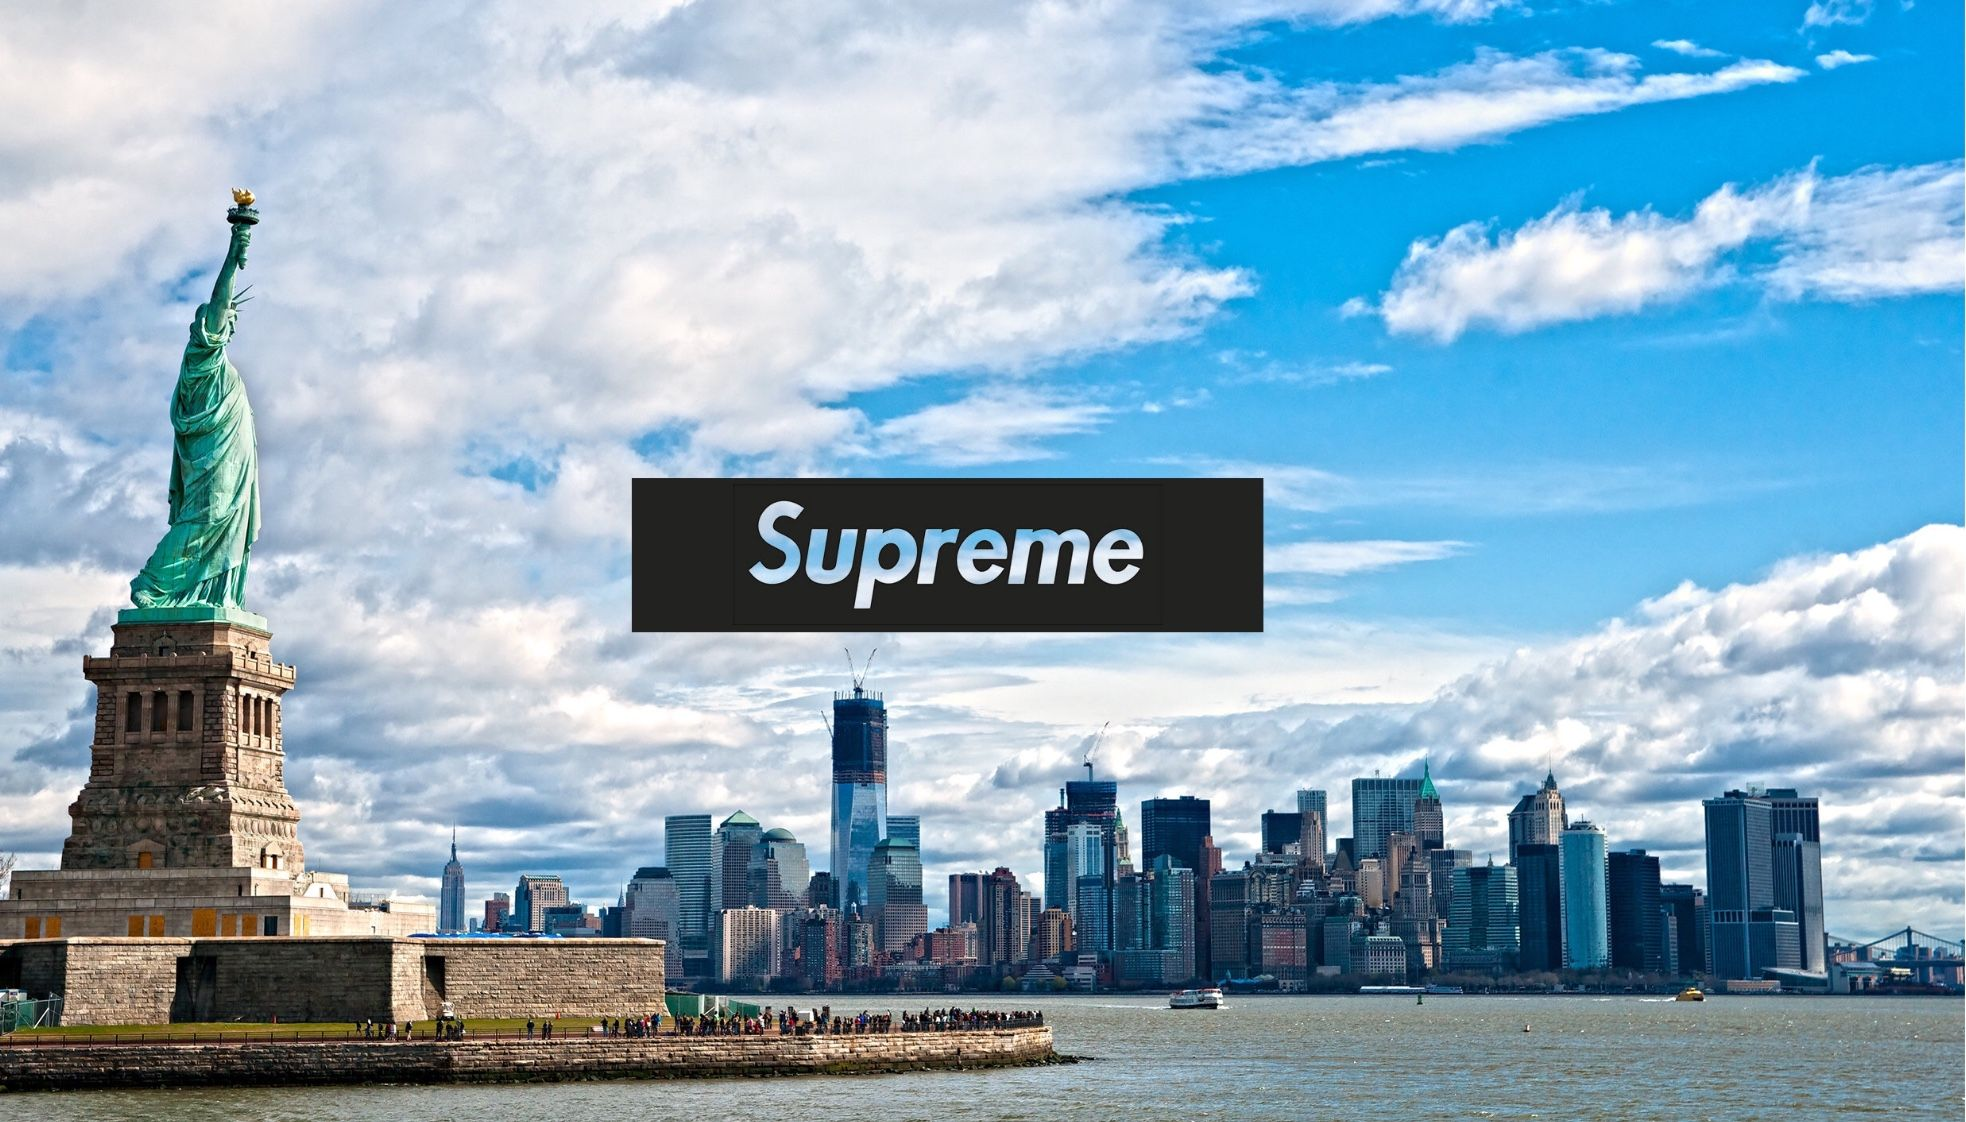 New York Supreme Wallpaper Hype Wallpaper Beast Wallpaper